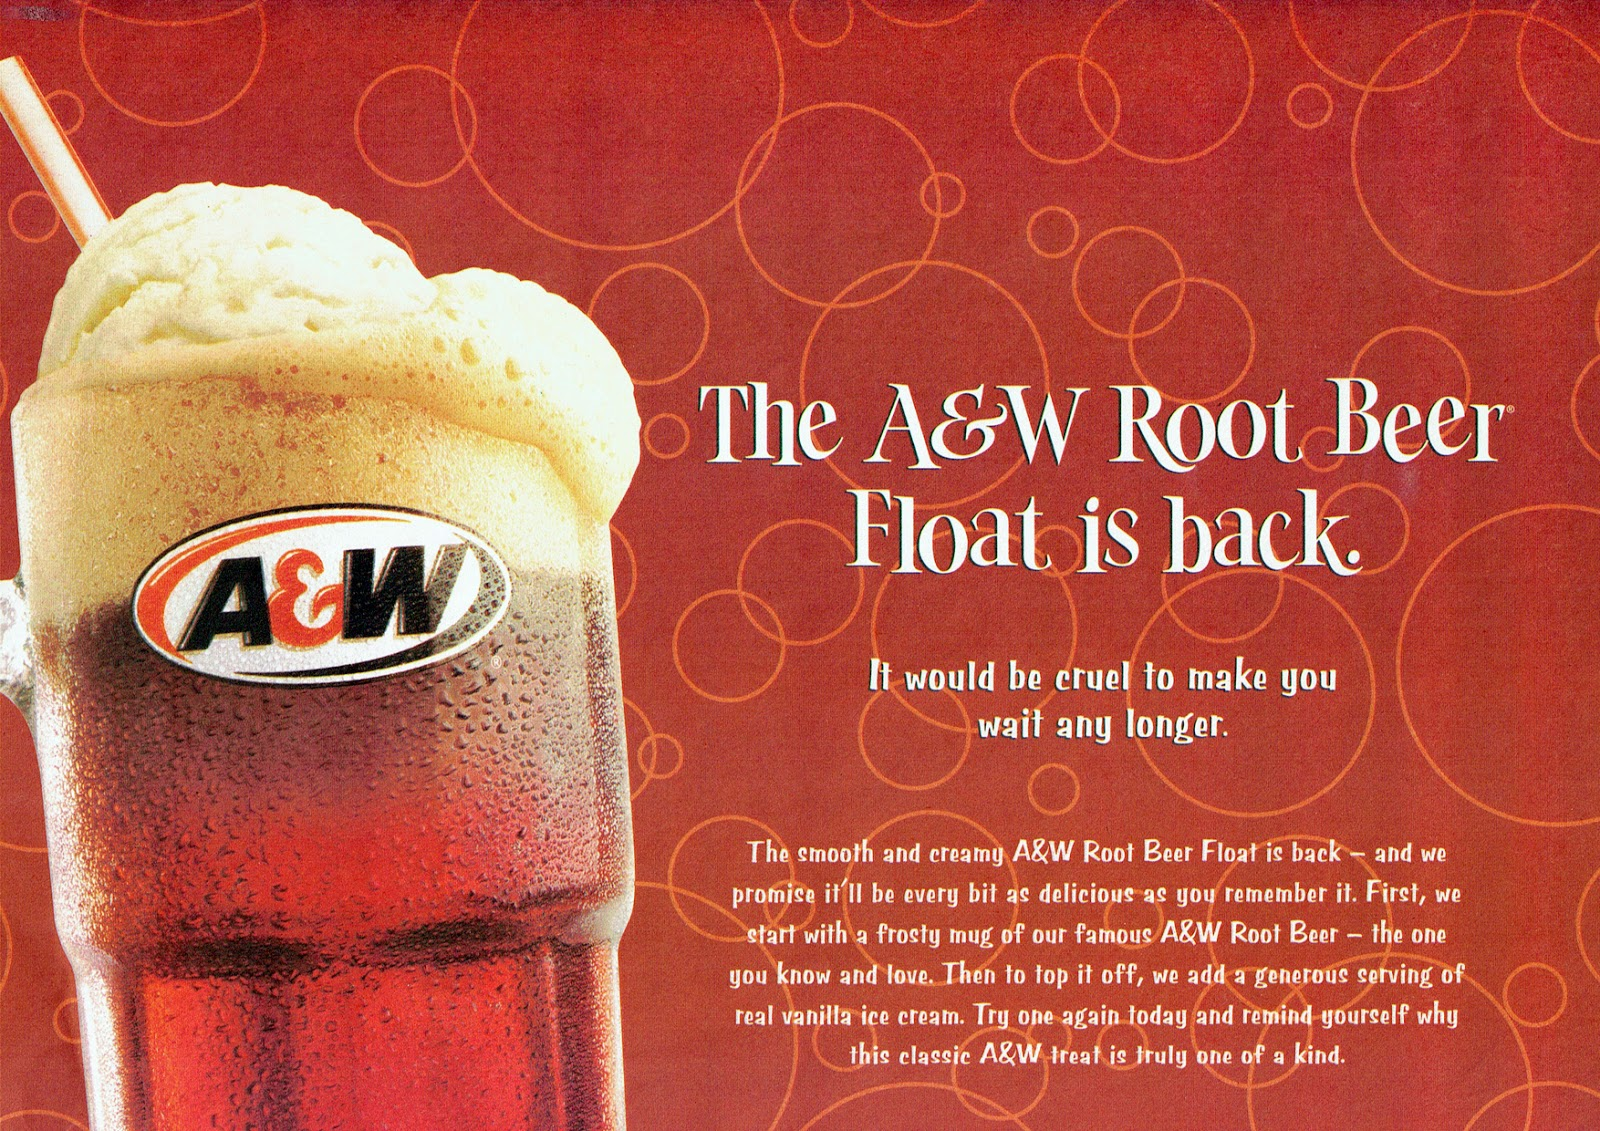 A&W Root Beer Float it Back